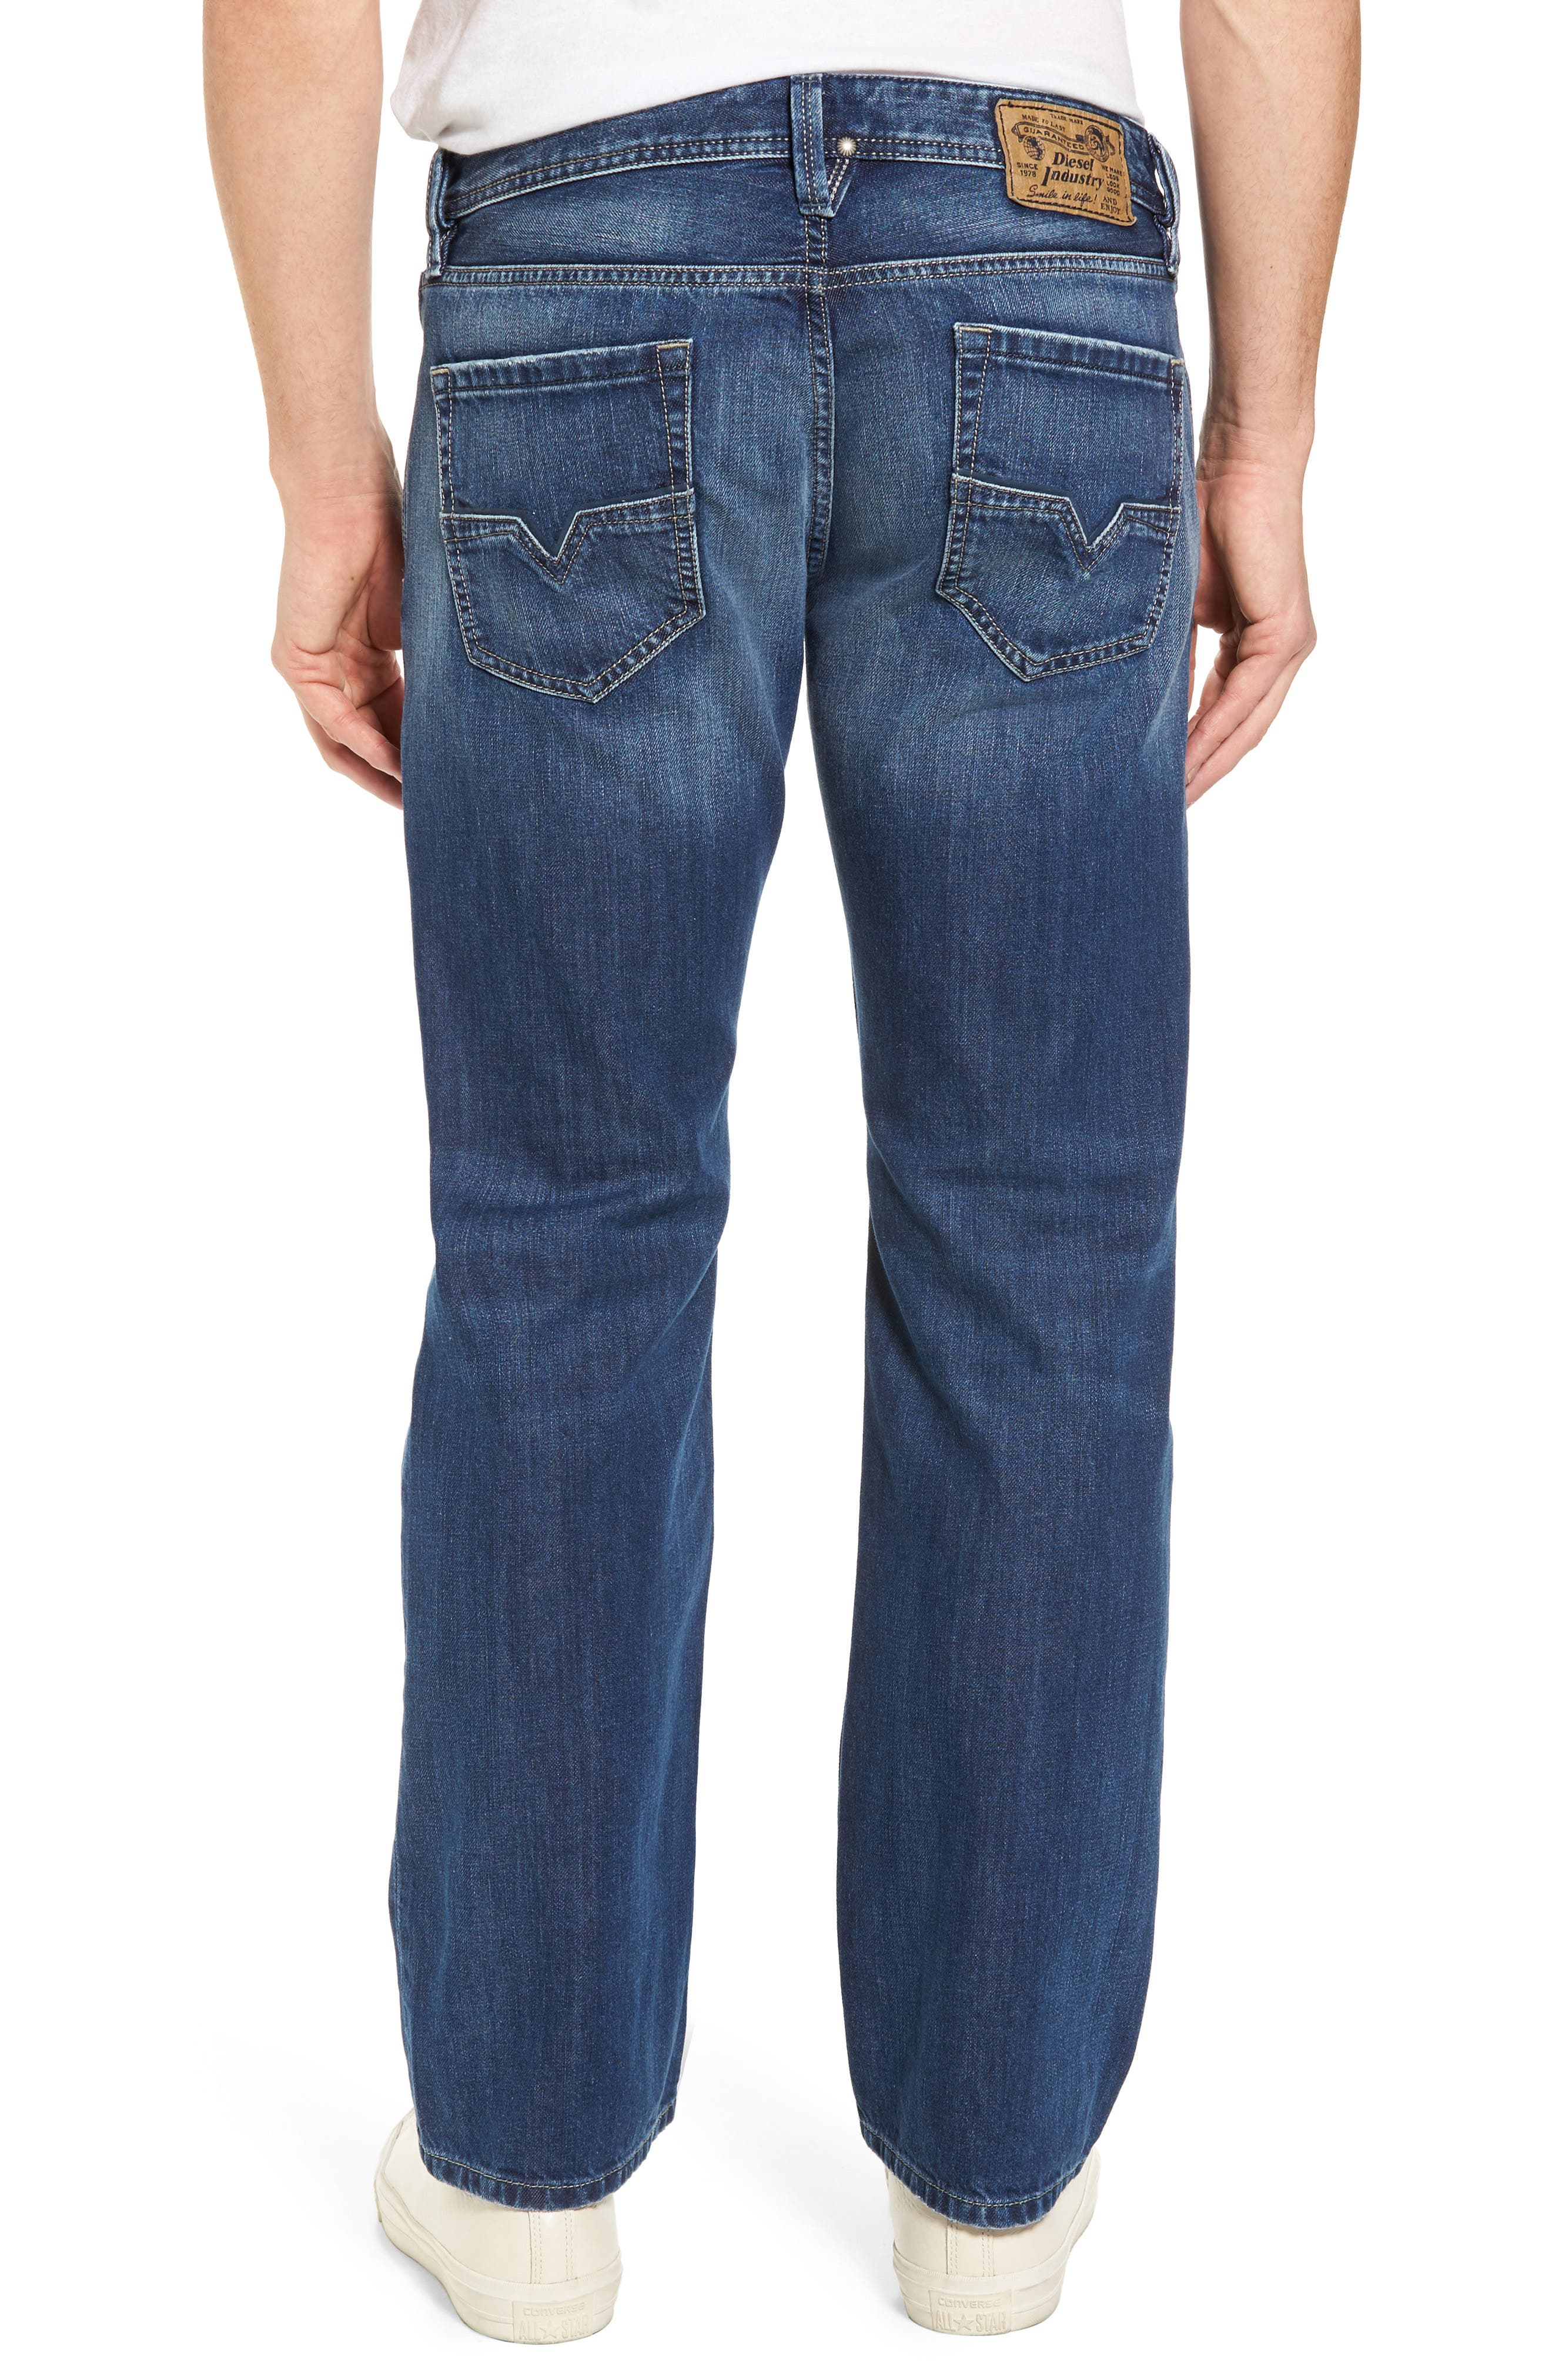 Larkee Relaxed Fit Jeans,                             Alternate thumbnail 2, color,                             008Xr